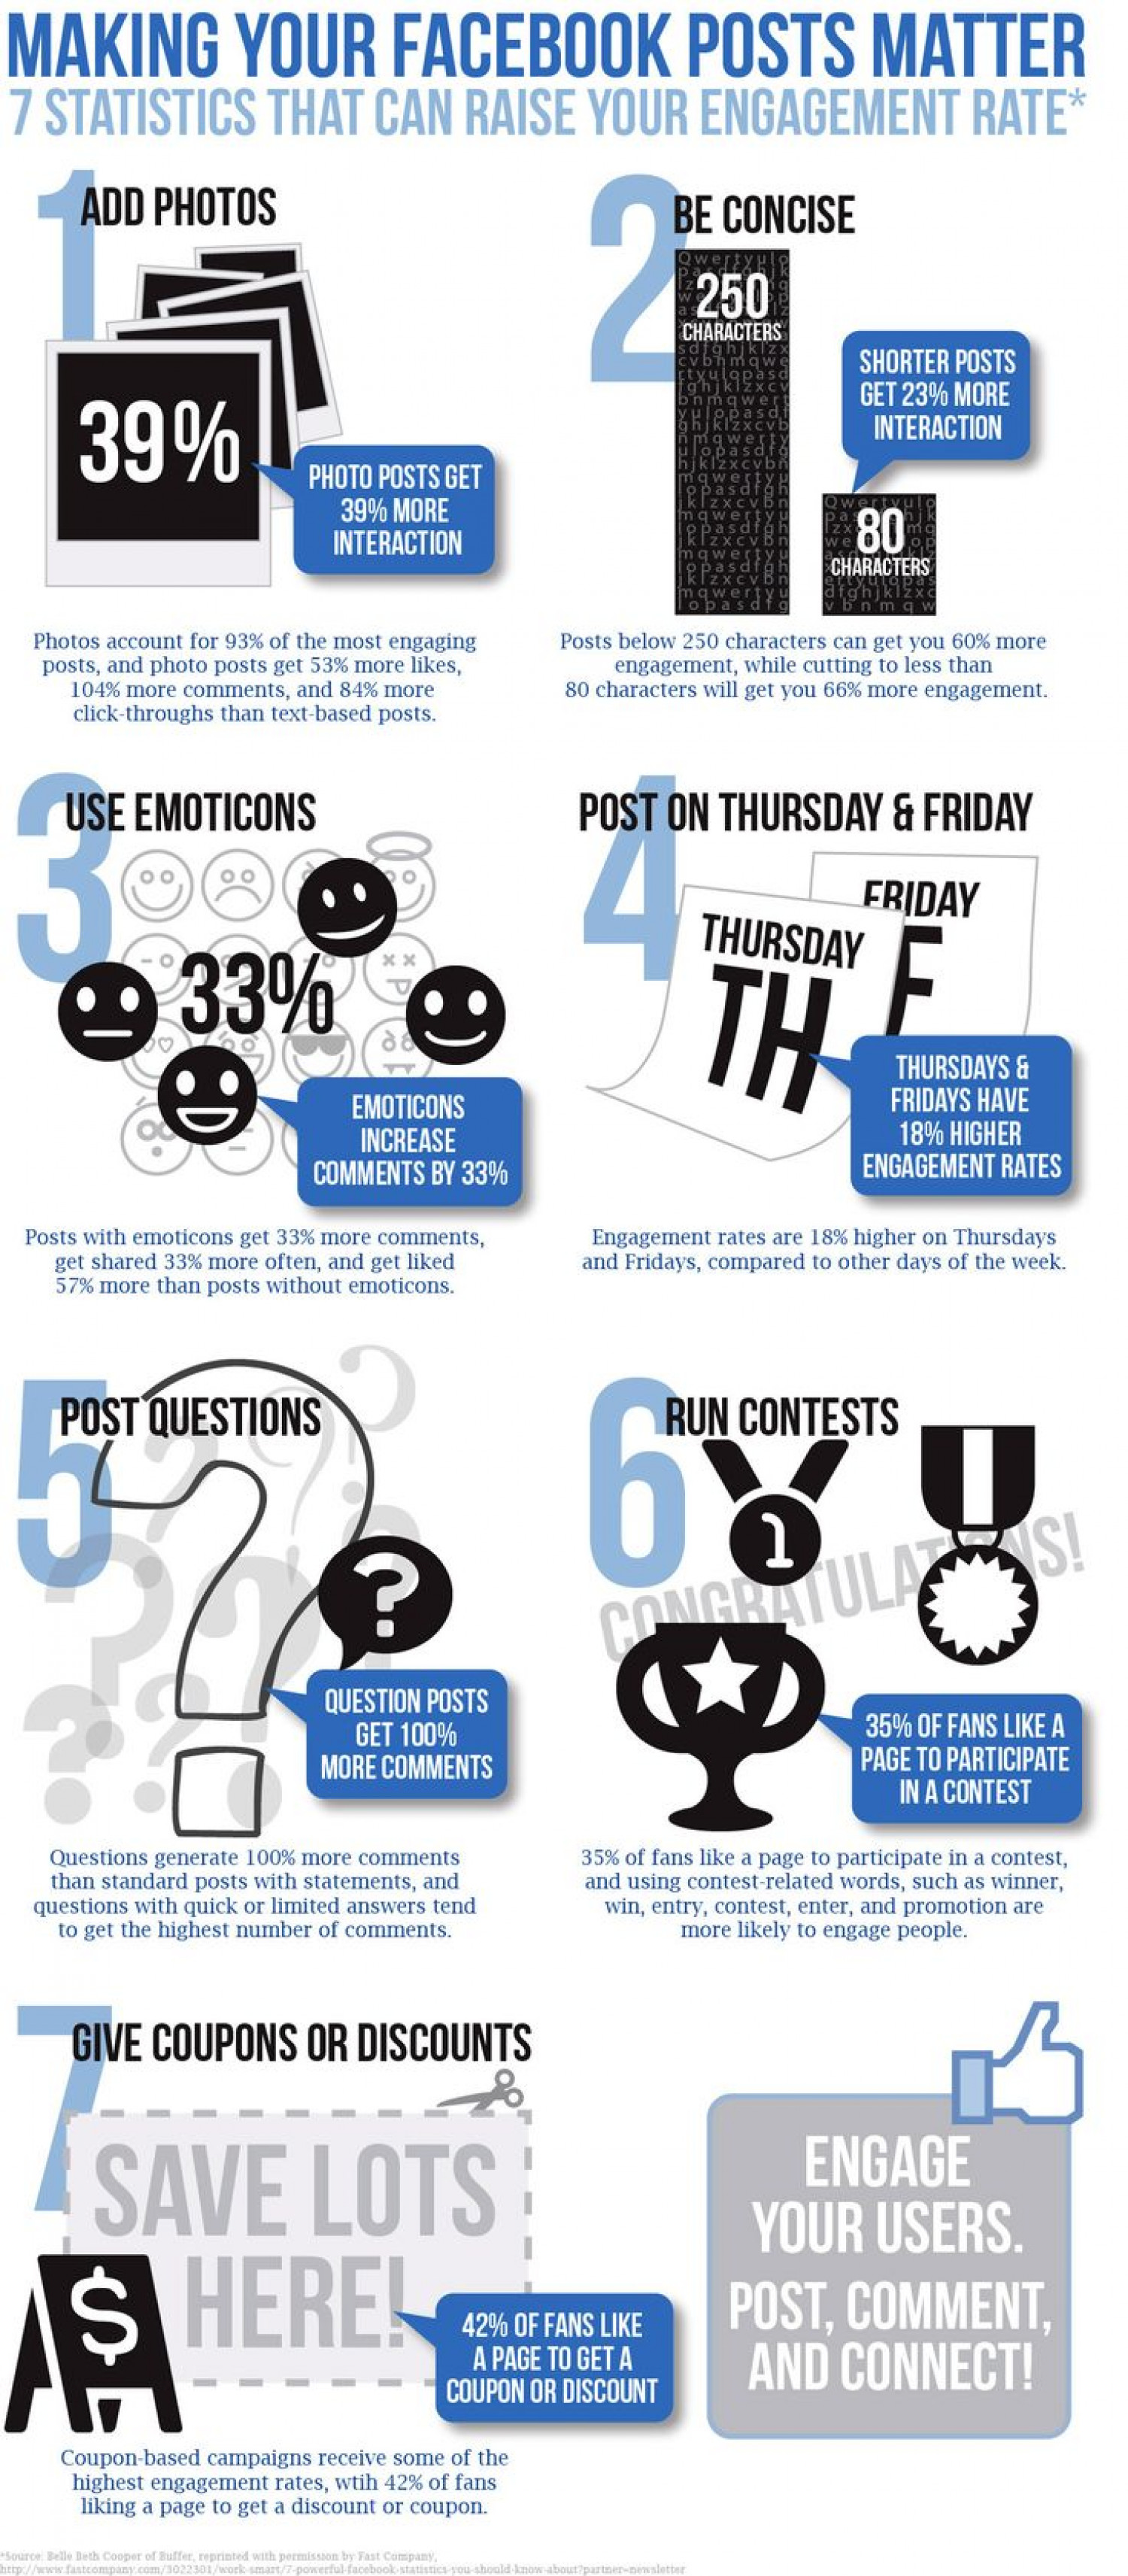 7 Statistics That Can Raise Your Facebook Engagement (Infographic) Infographic